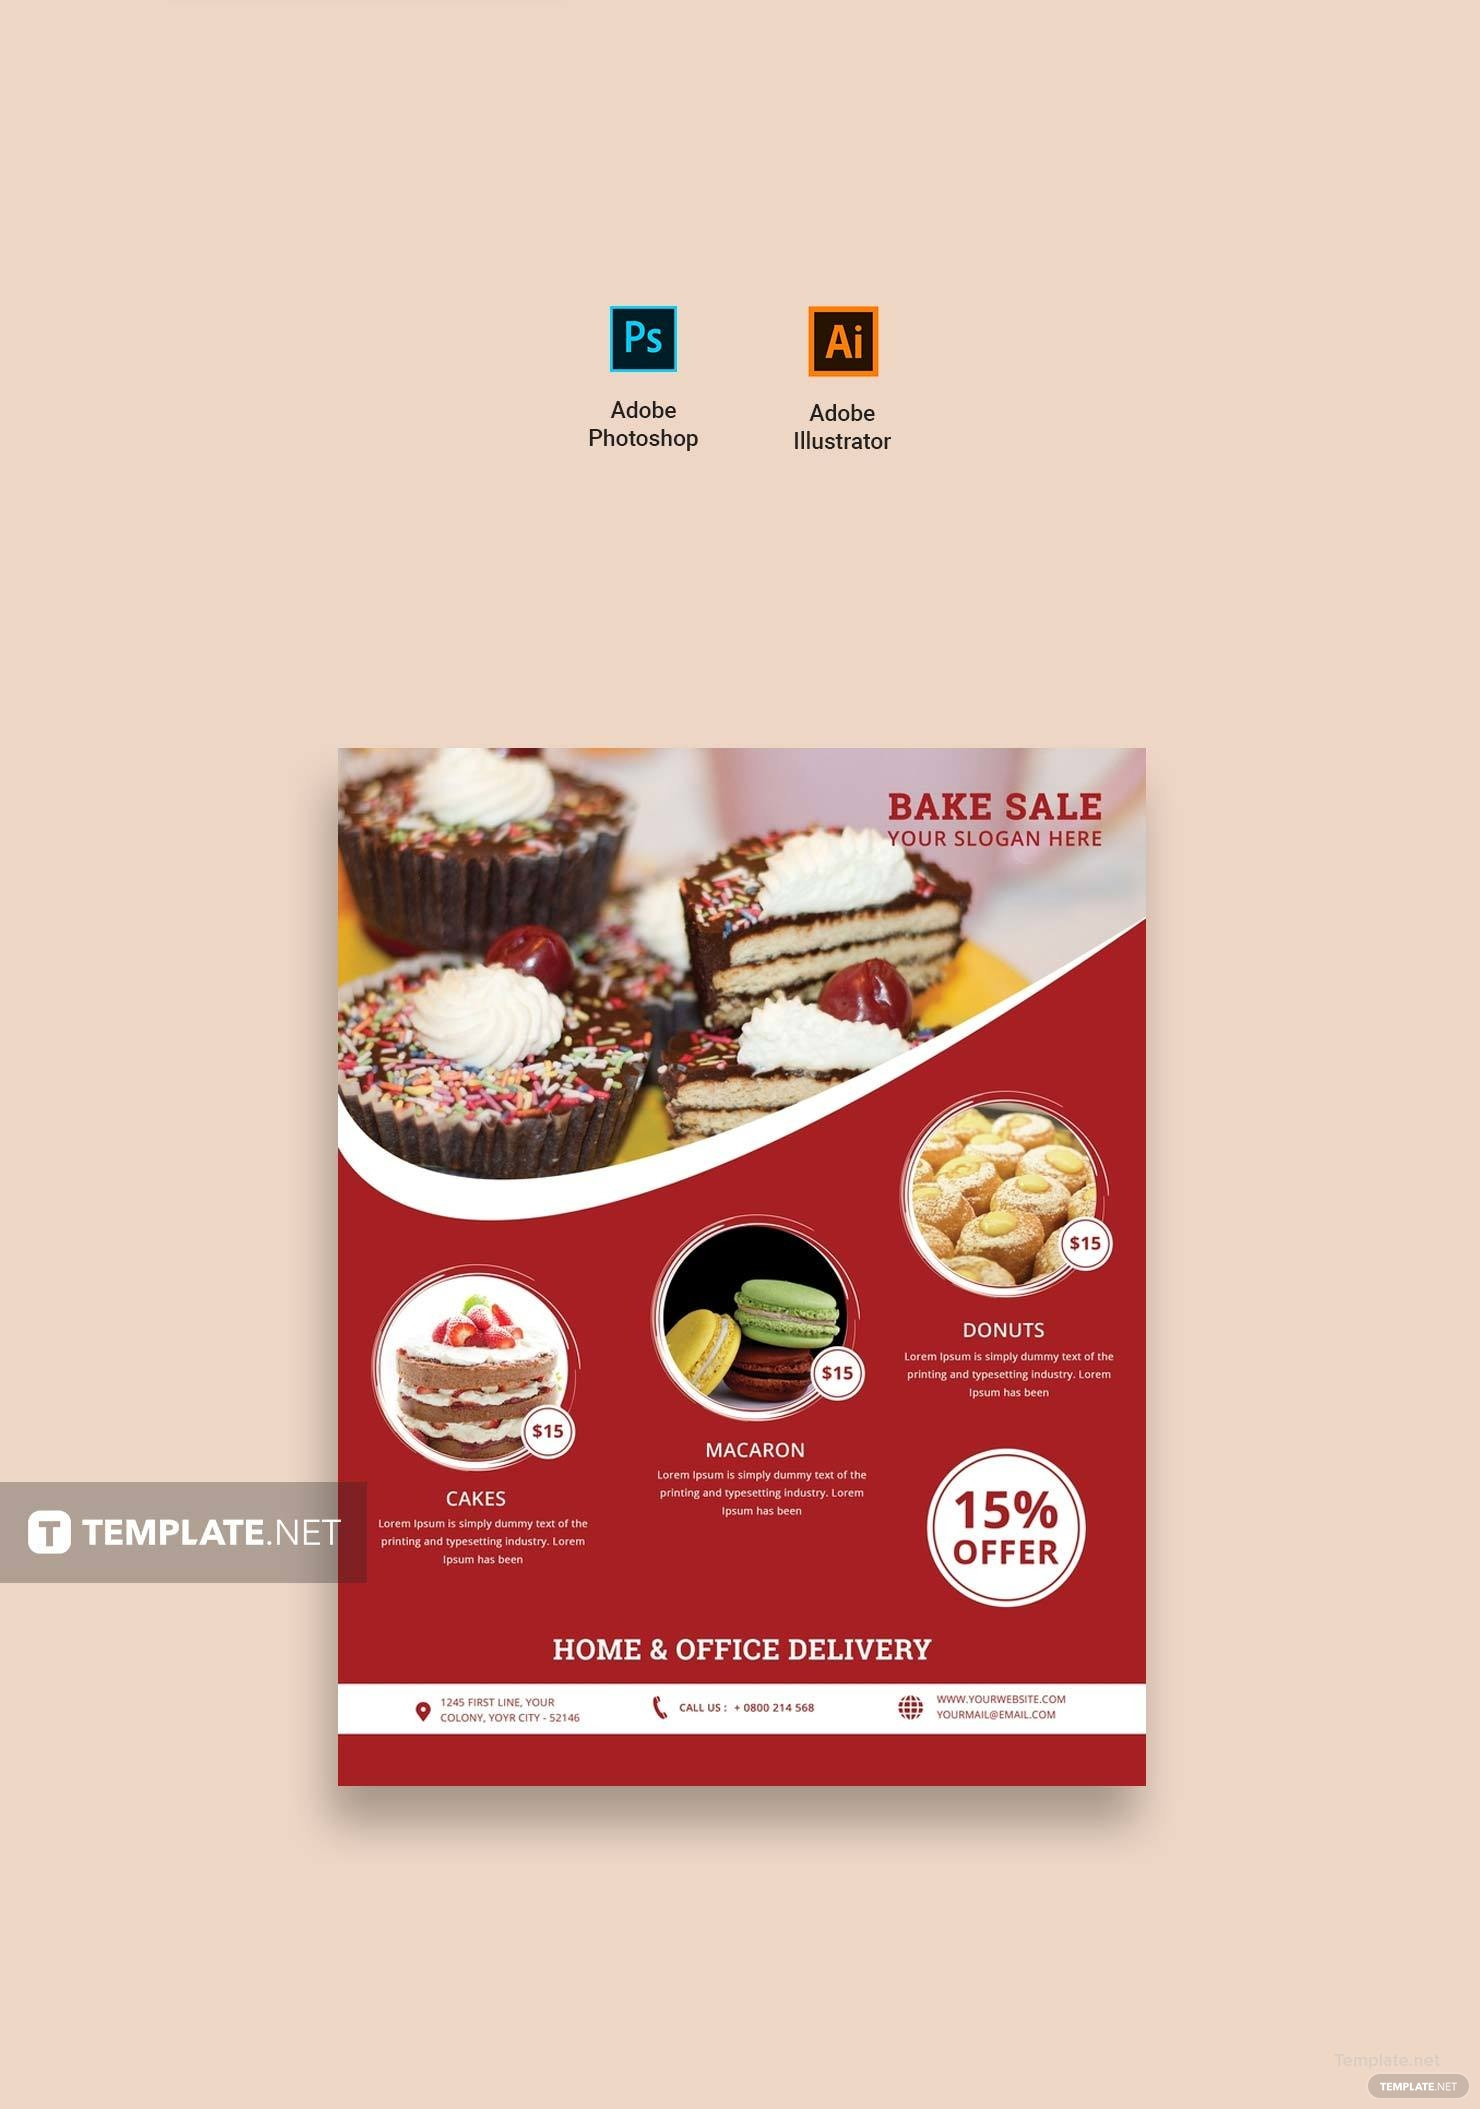 free printable bake sale flyer template in adobe photoshop  illustrator  microsoft word